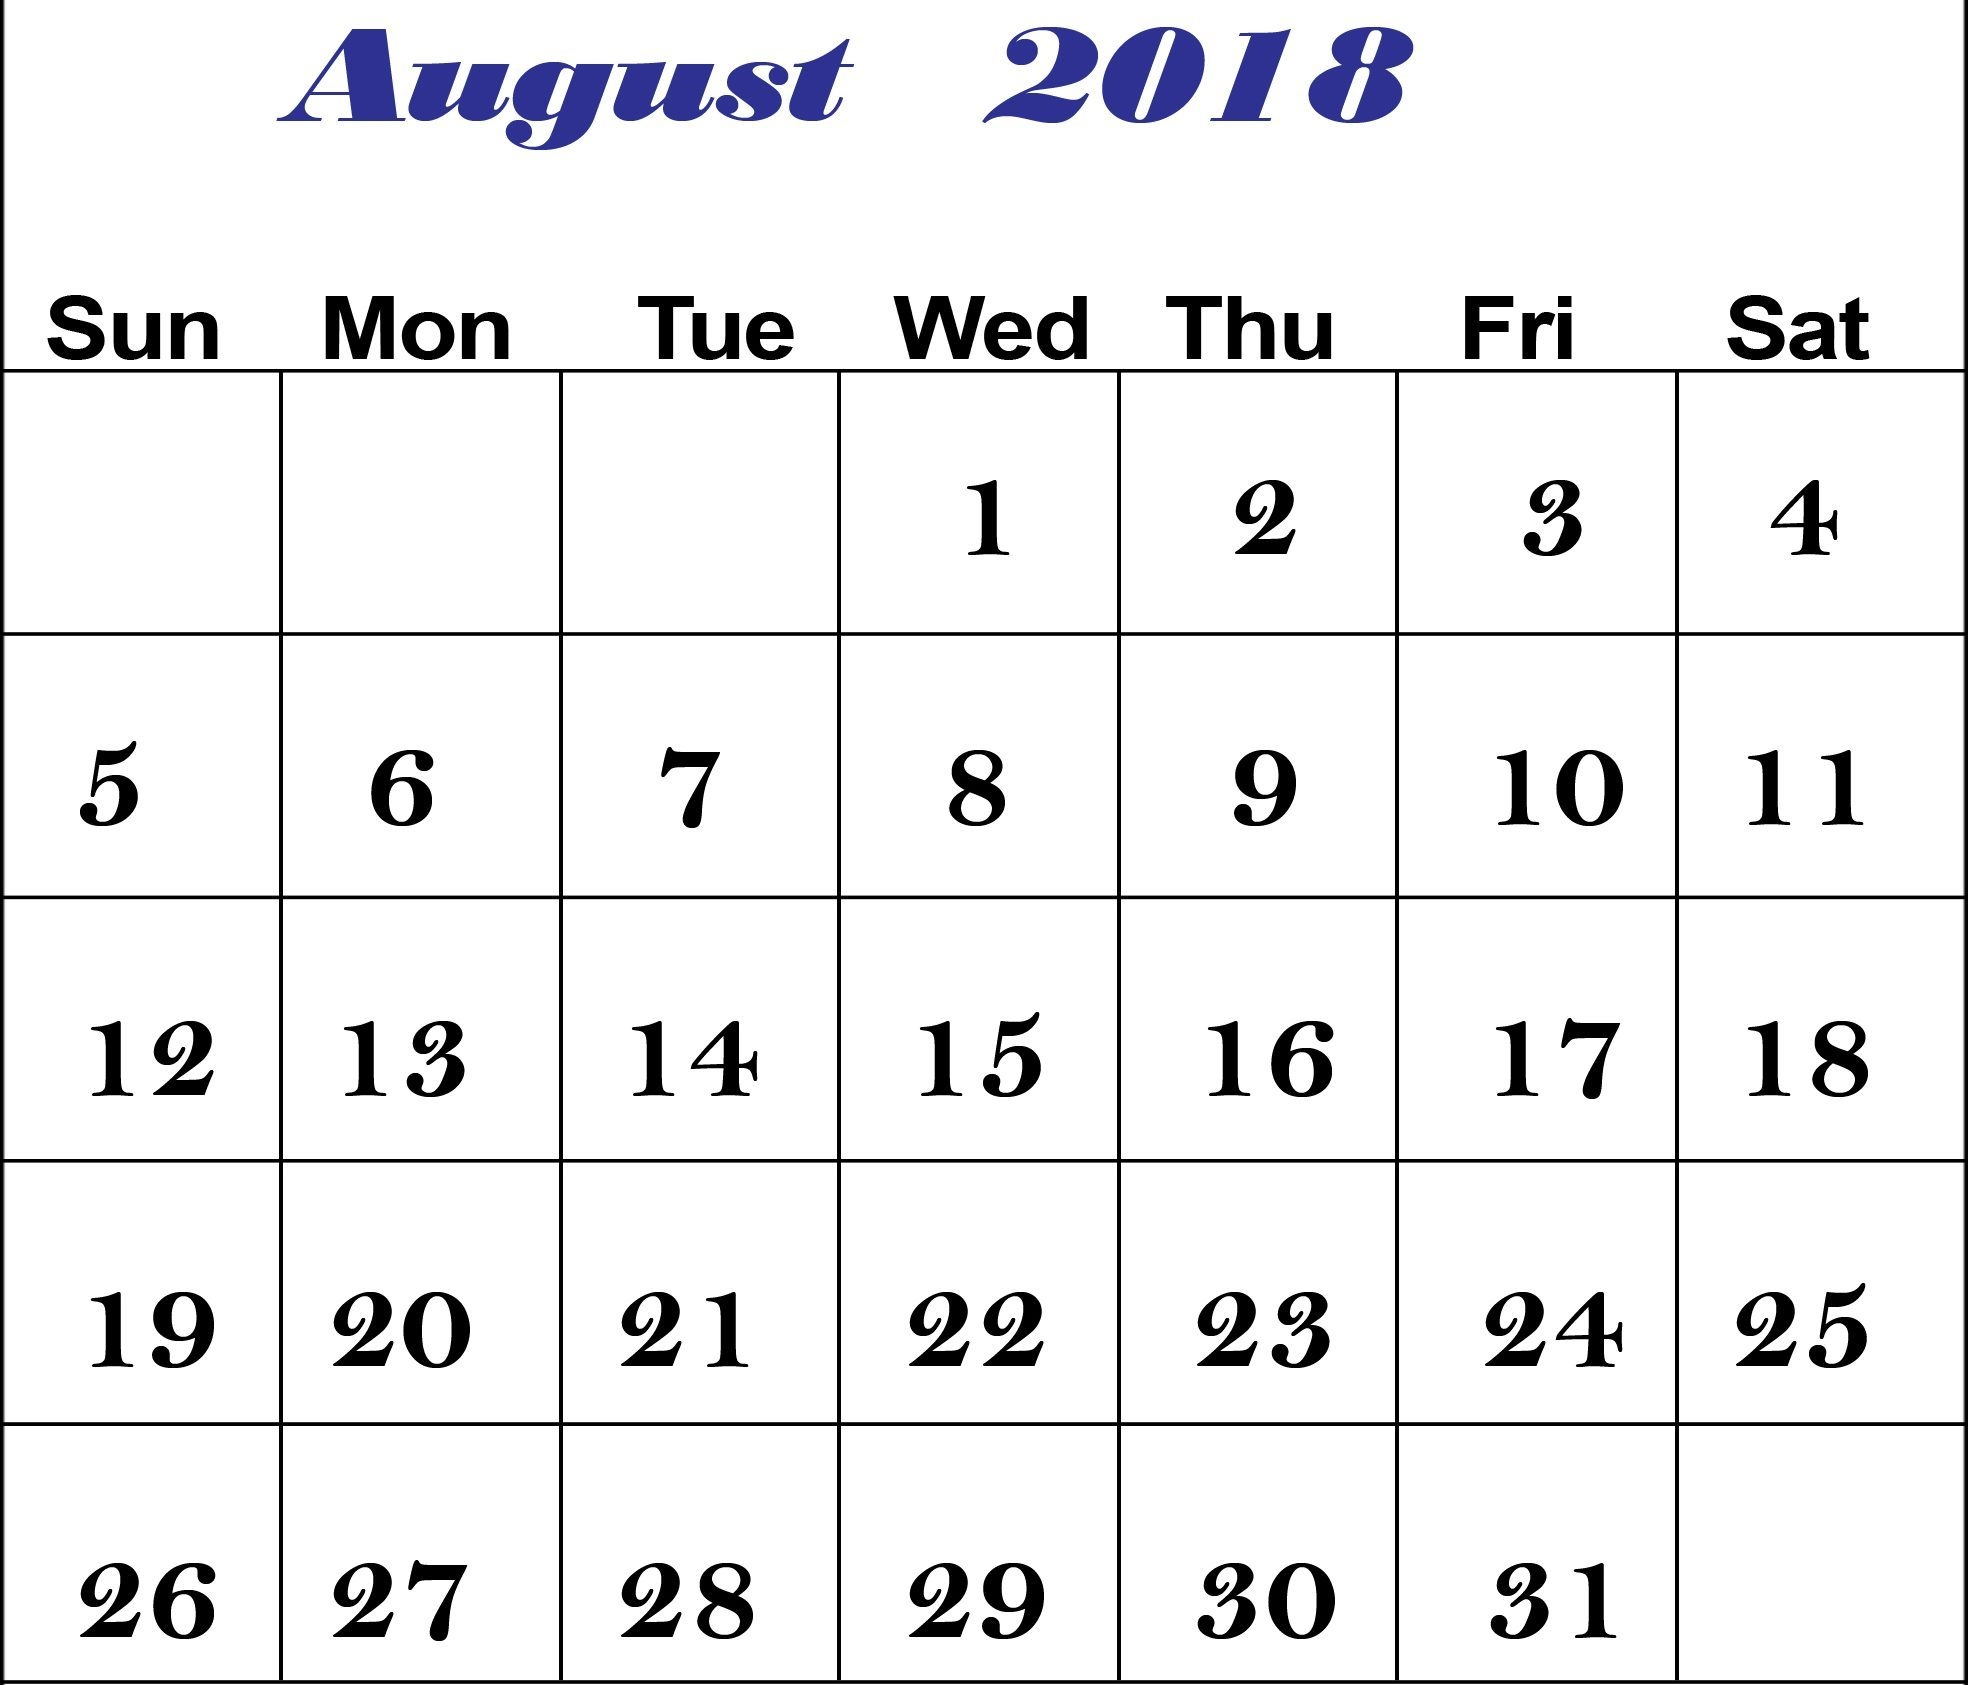 online august 2018 printable calendar printable office templates Calendar August 2018 Printable Worksheets erdferdf